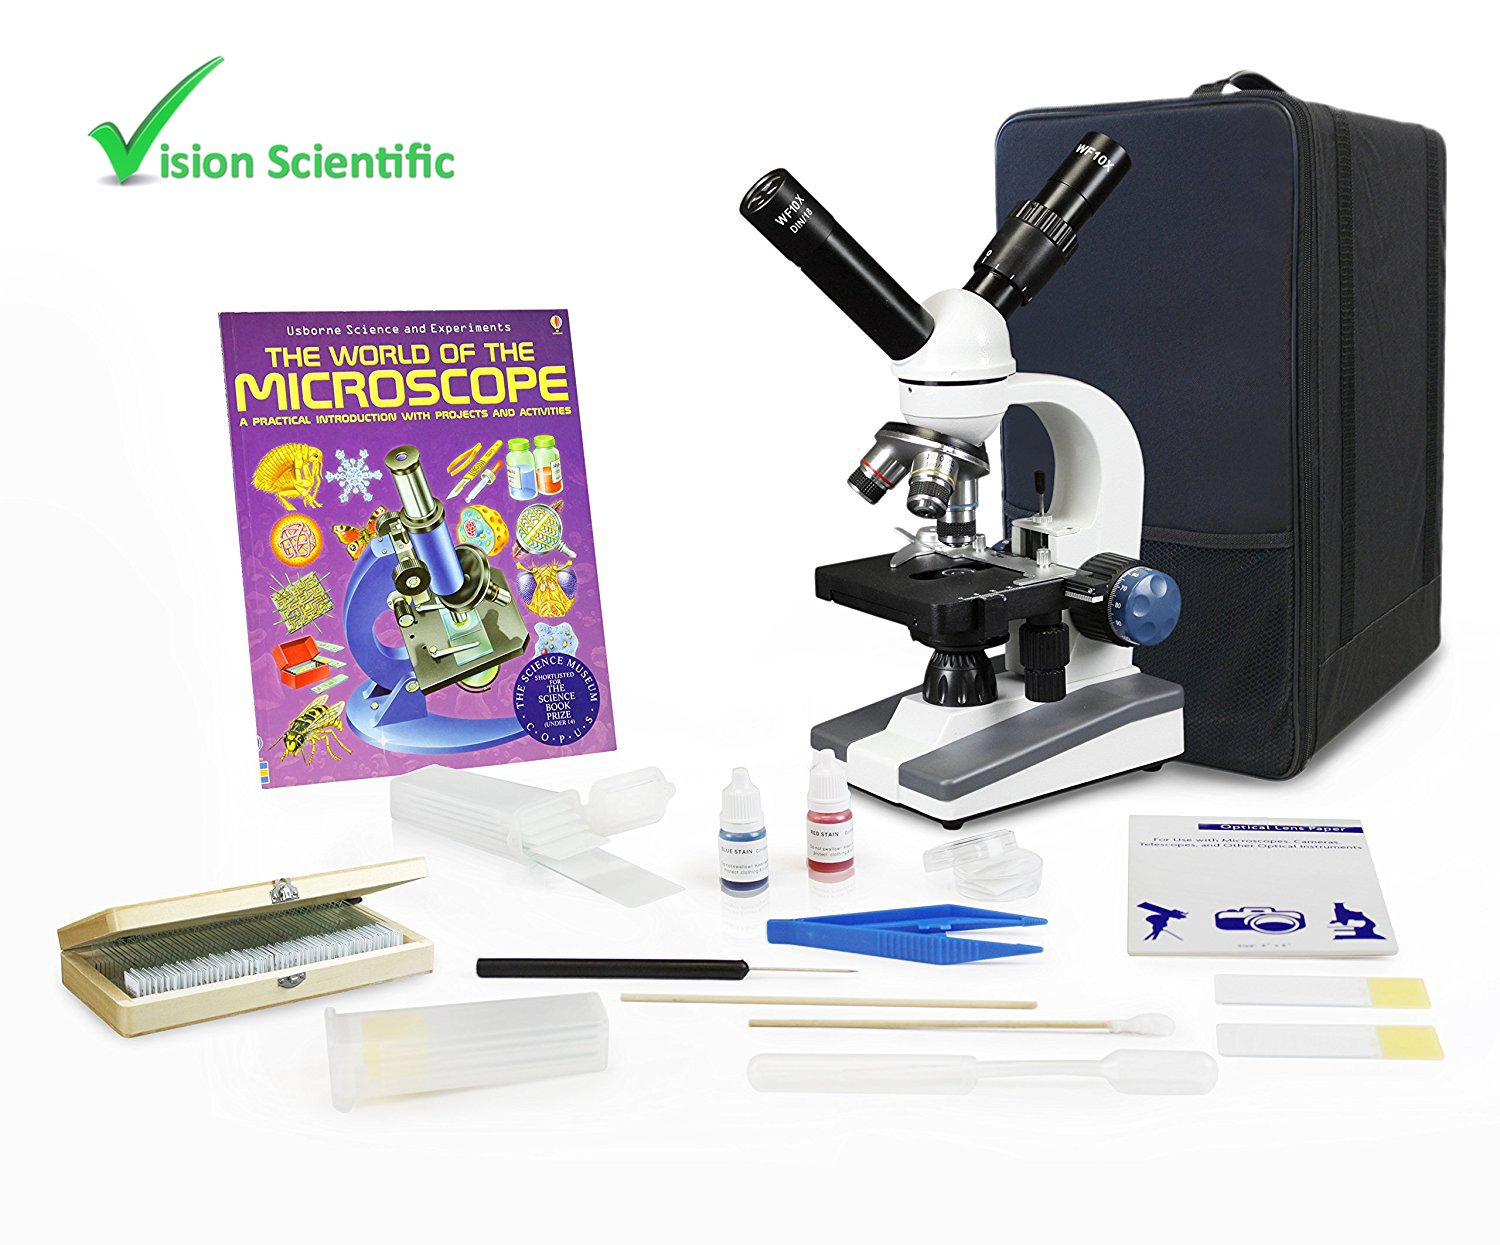 Vision Scientific VME0018-ST-RC-P3 Dual View Elementary Level Microscope, Mechanical Stage, Microscope Book, Microscope Discovery Kit,50 Prepared Slides Set,Carrying Case,Free Gift Package ($20 Value)